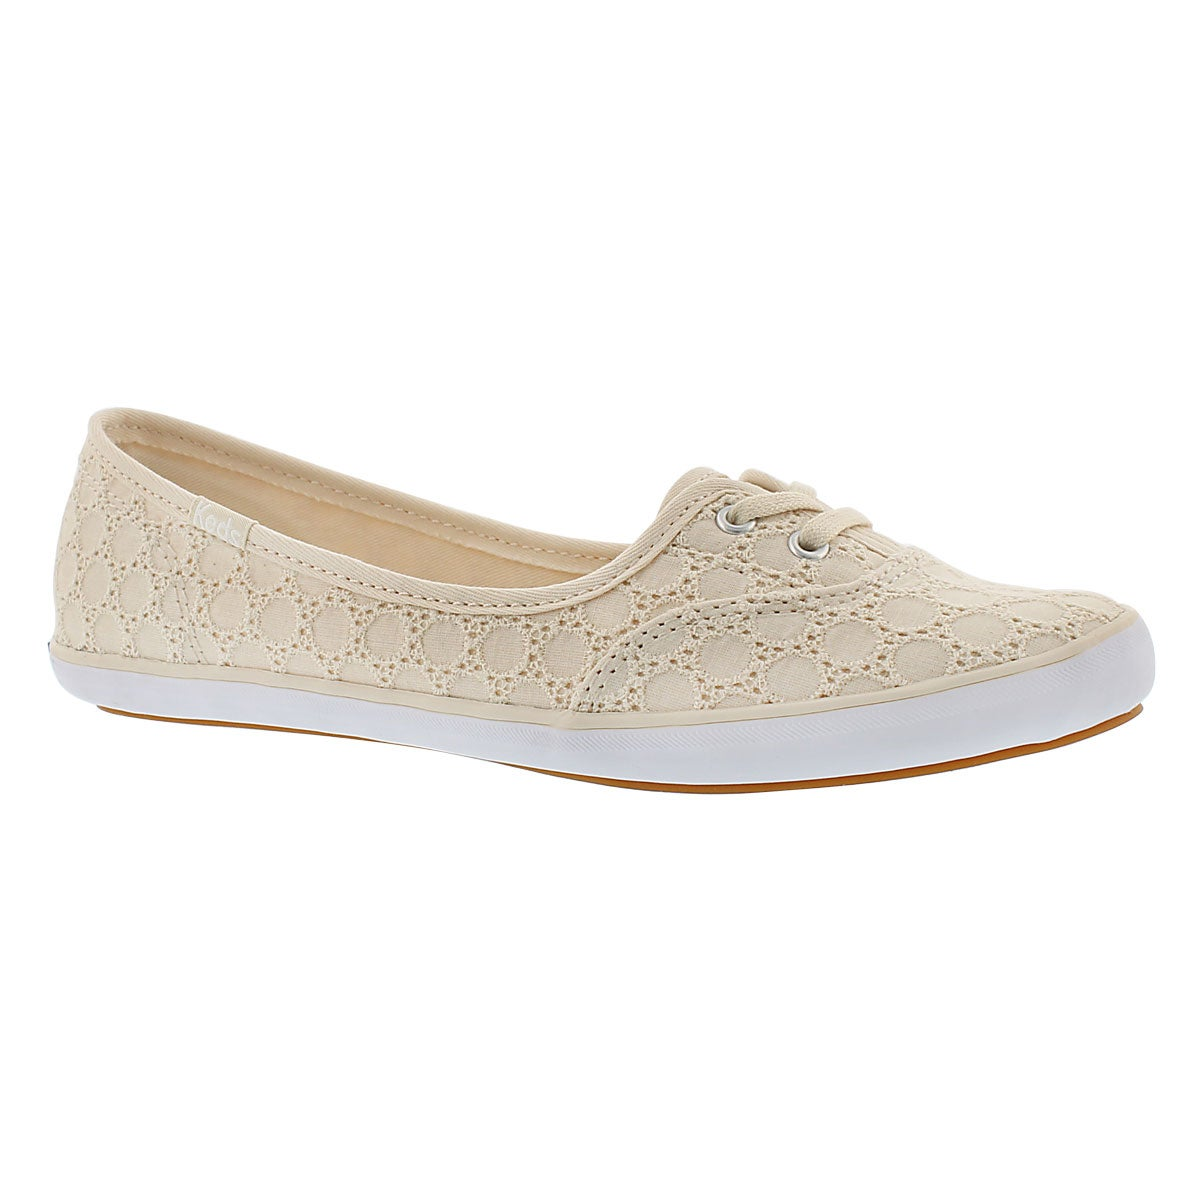 Lds Teacup Eyelet natural slip on